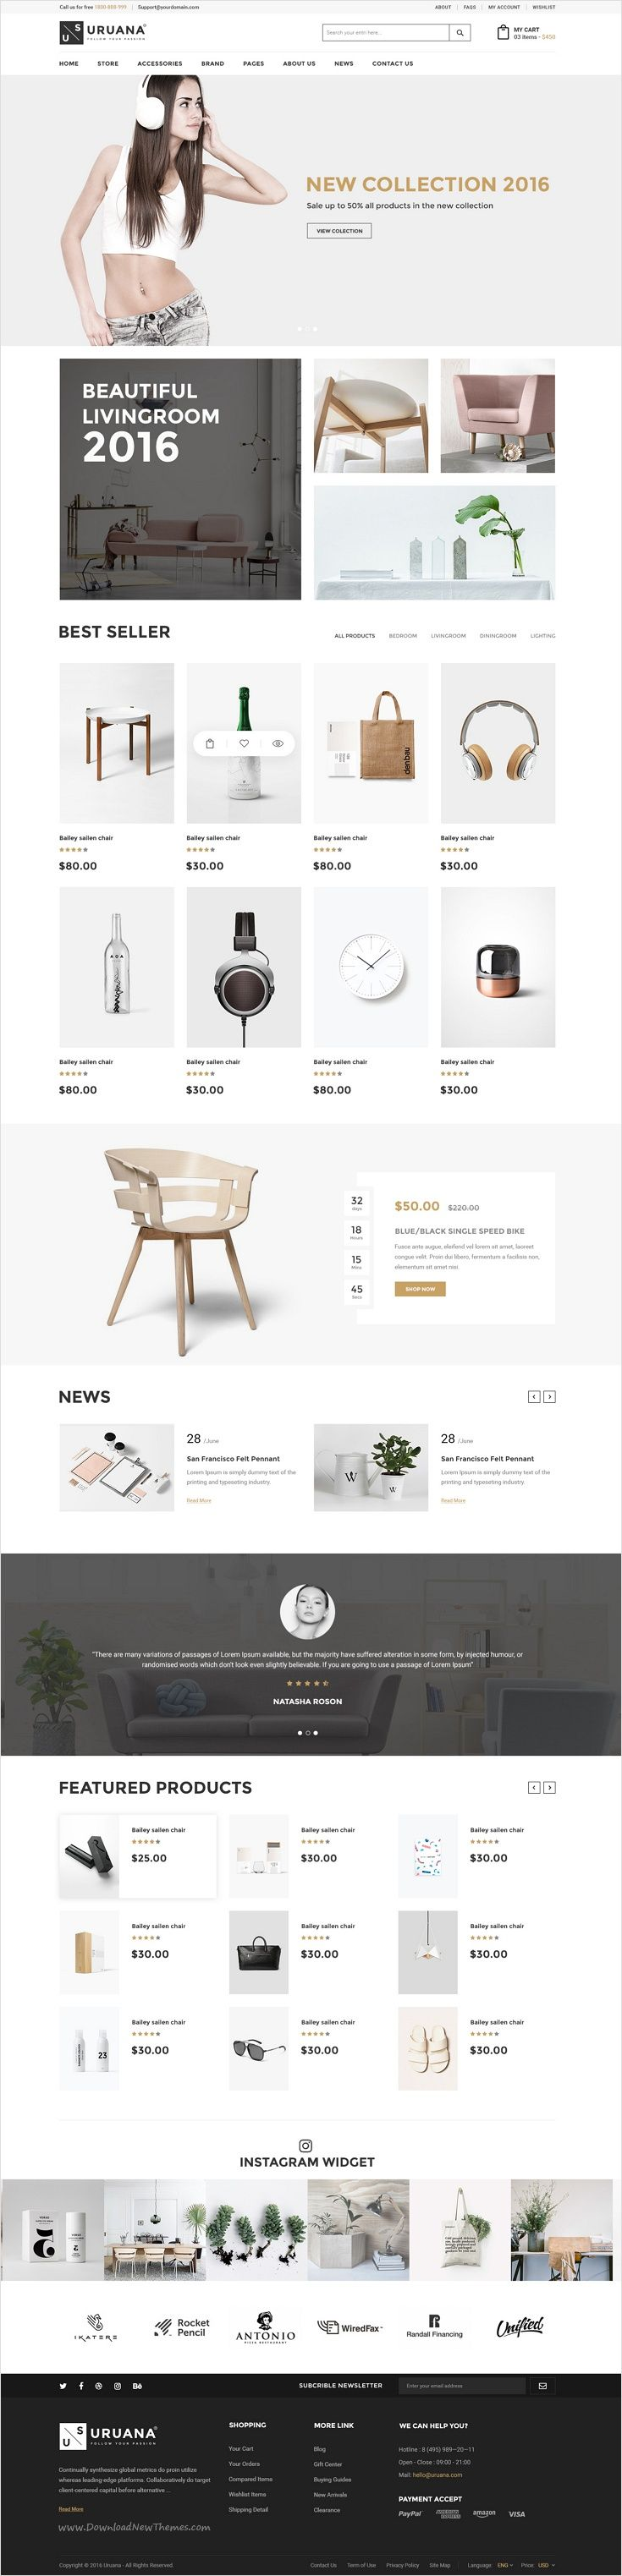 Uruana is uniquly design #PSD template for stunning #furniture #shop eCommerce website with 3+ multipurpose homepage layouts and 21 organized PSD pages download now➩ https://themeforest.net/item/uruana-multi-concept-ecommerce-psd-template/17446677?ref=Datasata